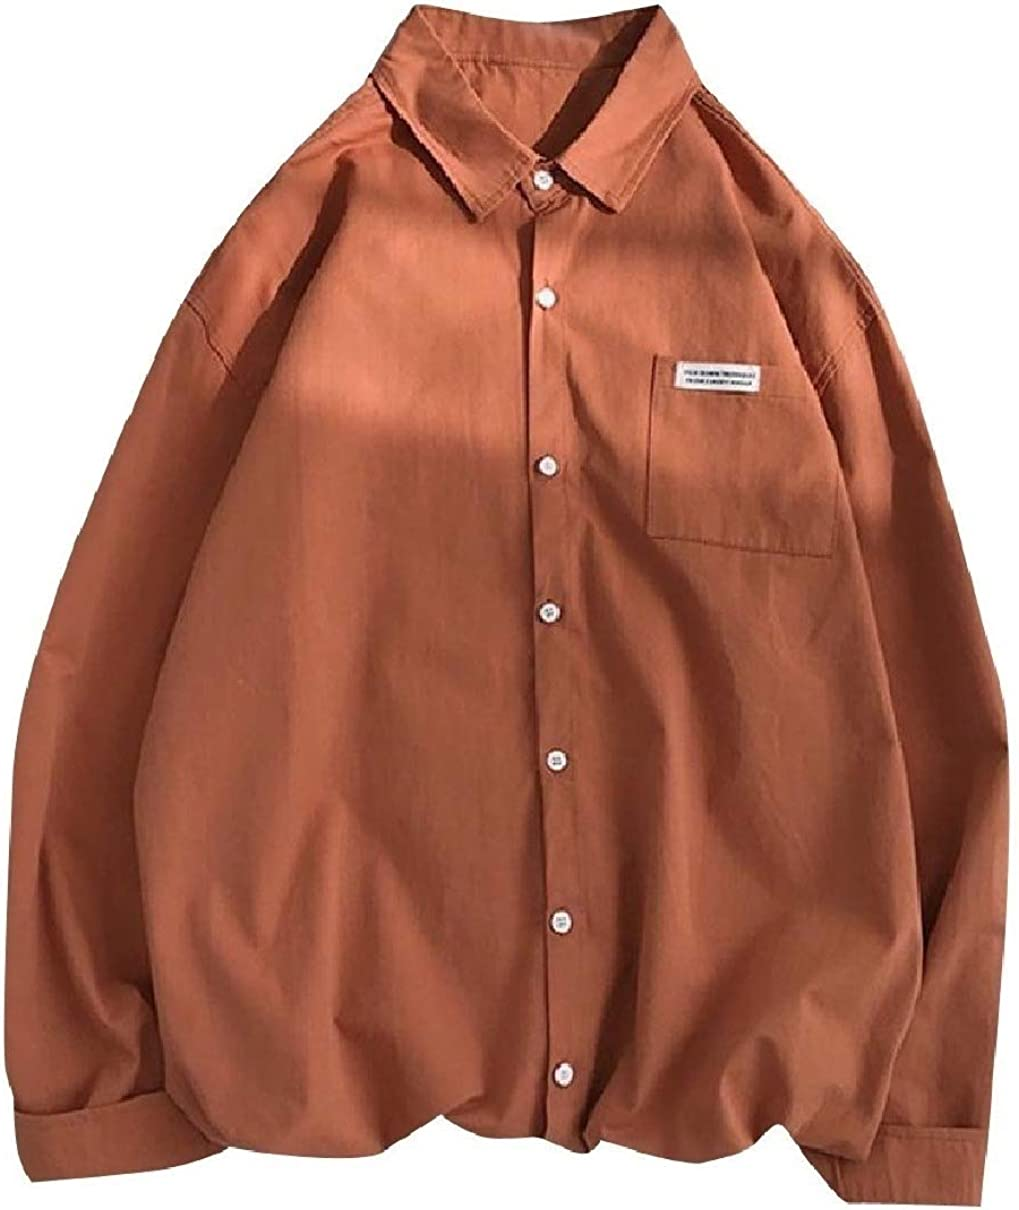 Coolred-Men Regular-Fit Long-Sleeve Button Down Back Cotton Work Shirt